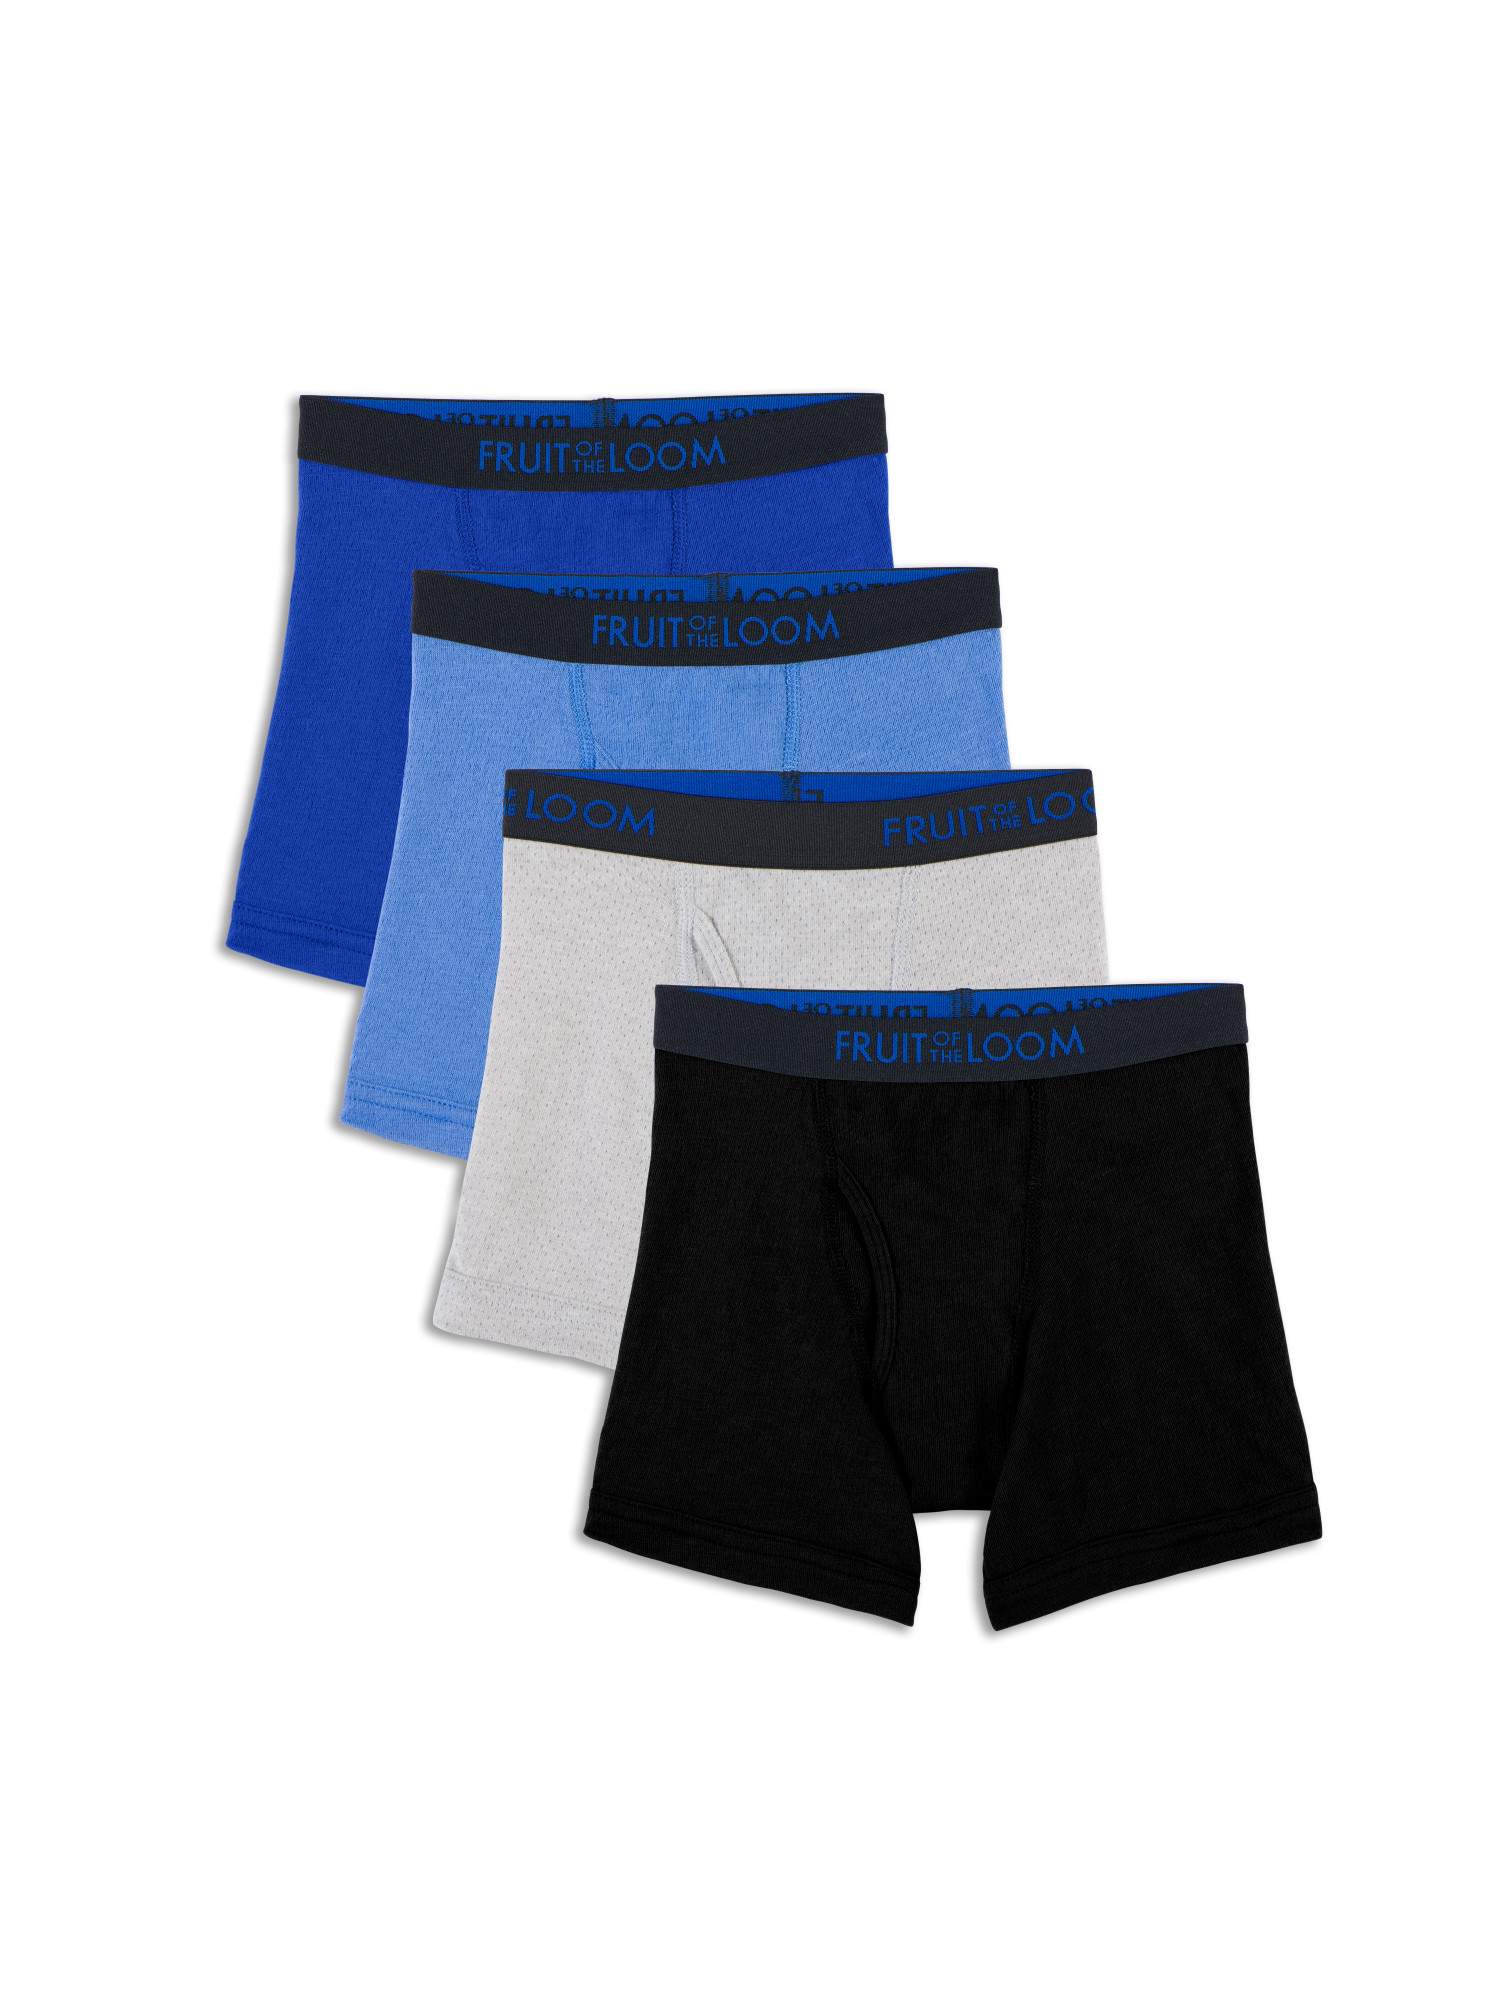 Breathable Cotton Mesh Boxer Briefs, 4 Pack (Toddler Boy)